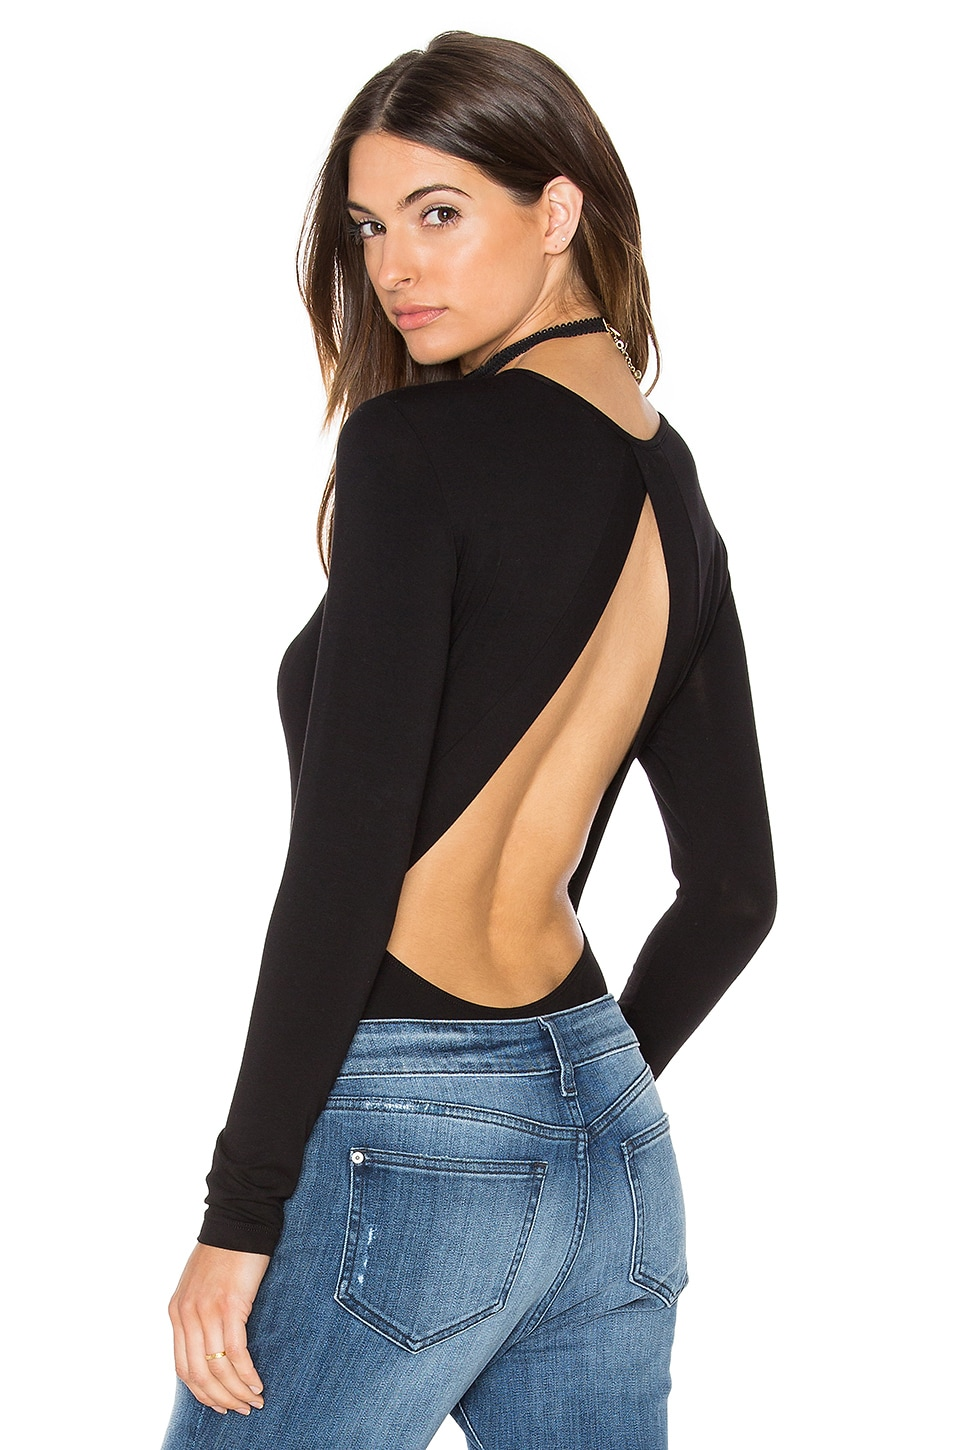 Cosabella Rimini Bodysuit in Black